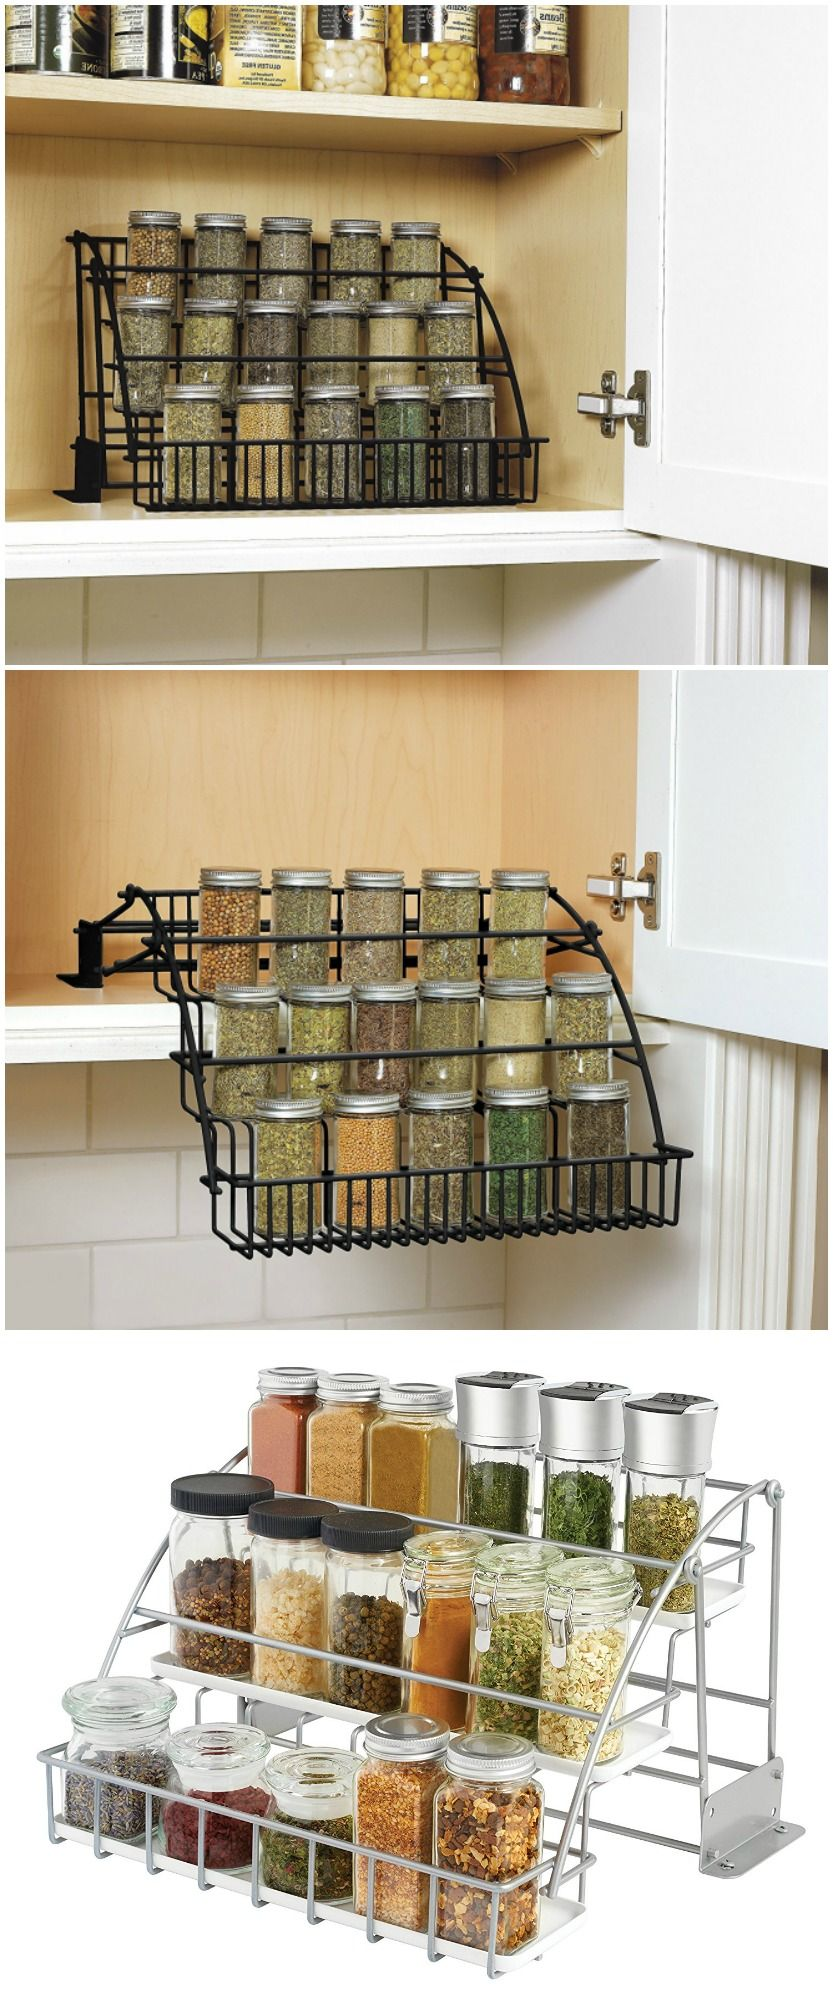 You Can Get This Spice Rack Anywhere Might Be Nicer Than Throwing Your Spices In A Cupboard And Ta Kitchen Wall Storage Diy Cupboards Kitchen Organization Diy